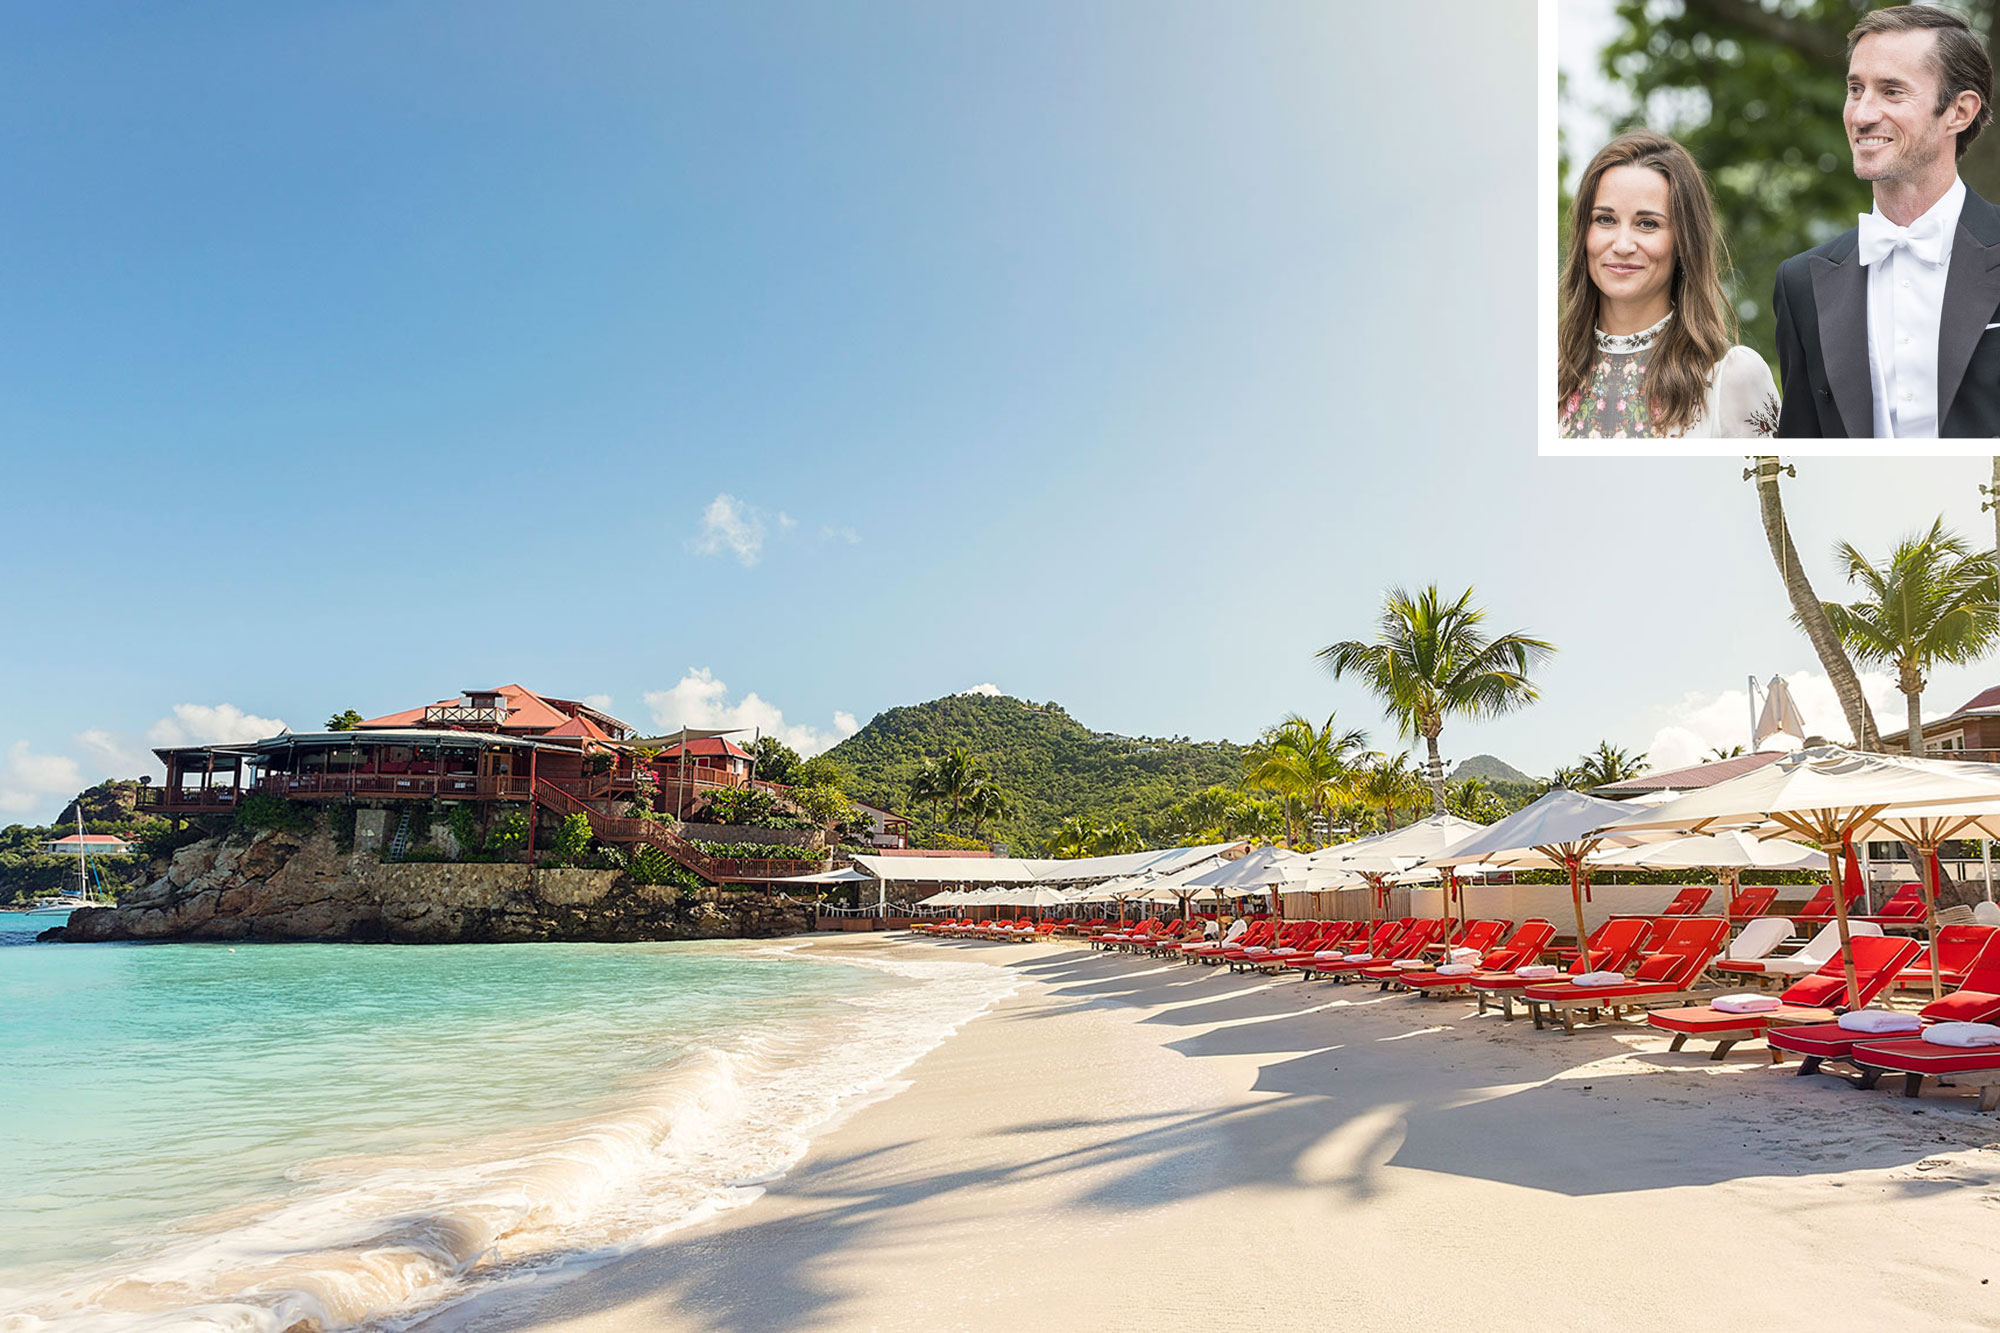 St. Bart's Most Exclusive, Celeb-Frequented Resort Is Owned by Pippa Middleton's New In-Laws